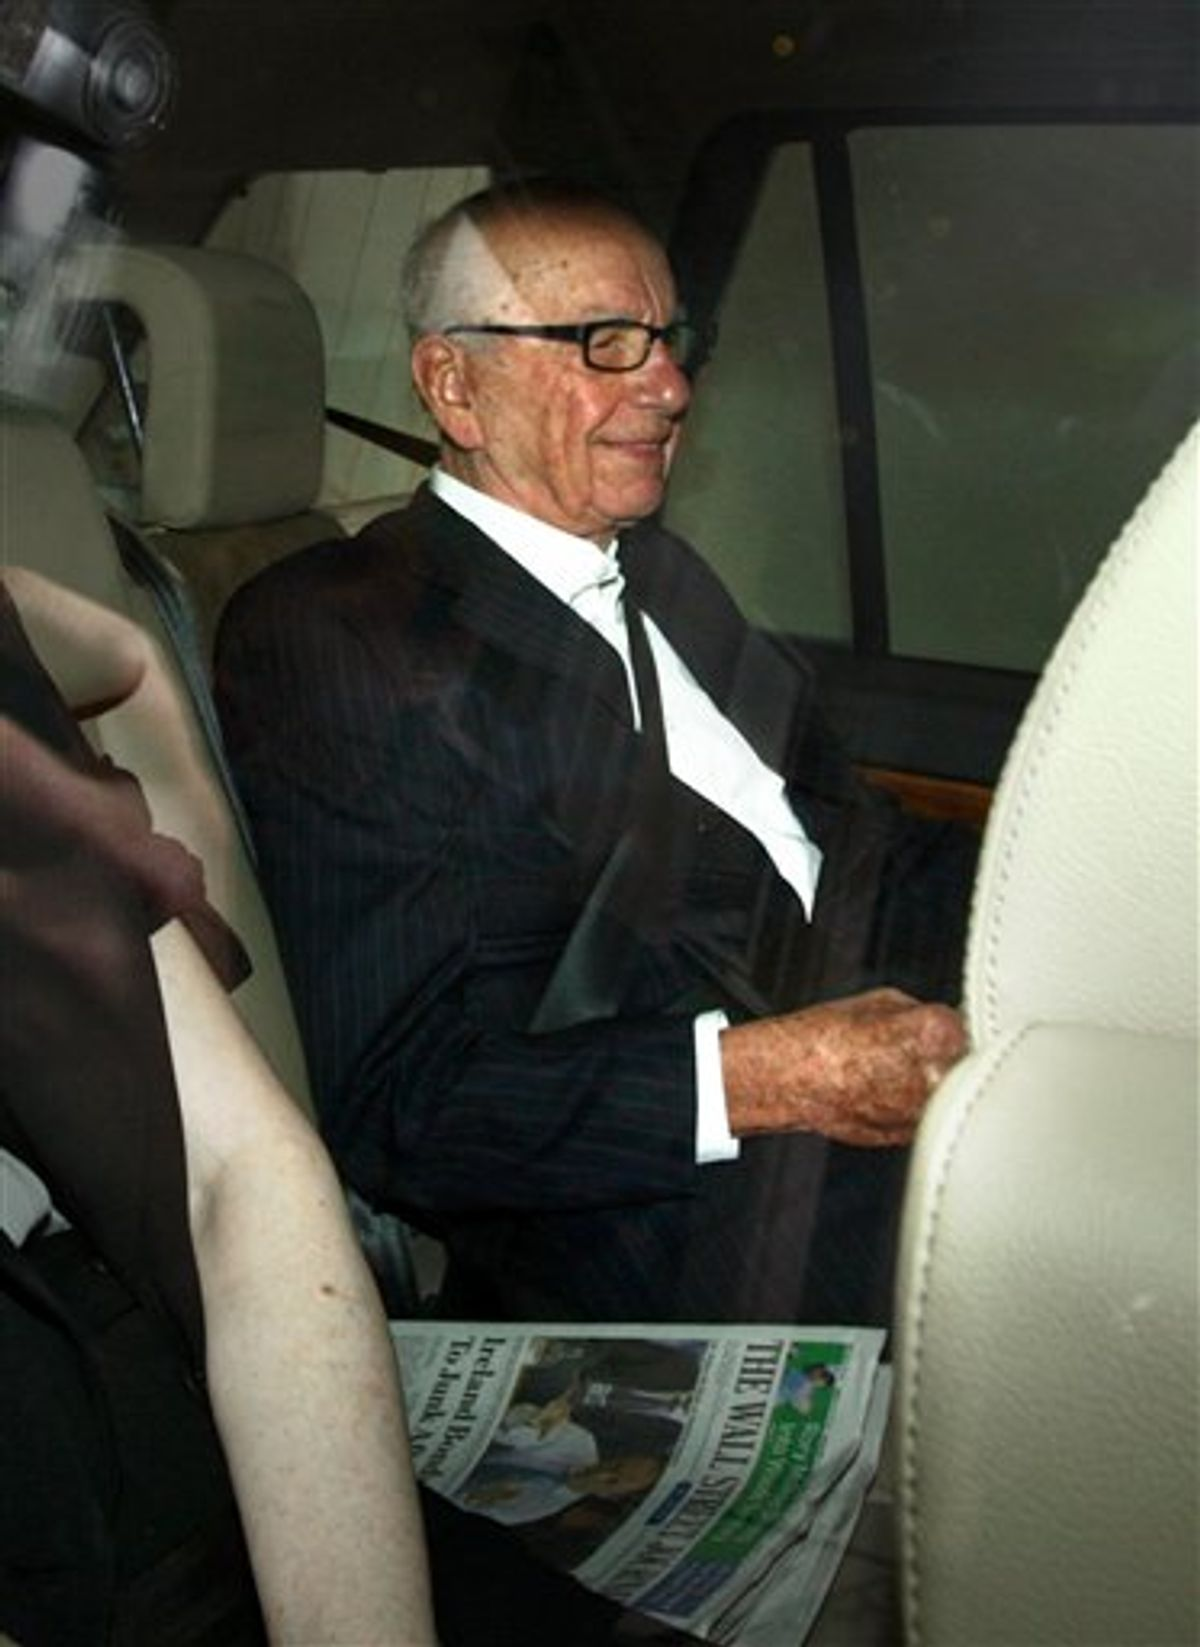 Rupert Murdoch leaves his home in Mayfair, London, as British Prime Minister David Cameron joined demands for the media mogul to drop his BSkyB takeover bid in the wake of the phone-hacking scandal Wednesday July 13, 2011. Britain's House of Commons is poised to demand that Rupert Murdoch give up on his ambition of taking over a lucrative broadcaster while a phone hacking scandal rages around his British newspaper holdings. Cameron has put his party's weight behind an opposition motion up for a vote Wednesday which declares that bidding for full control of British Sky Broadcasting would not be in the national interest. (AP Photo/Steve Parsons)  UNITED KINGDOM OUT NO SALES NO ARCHIVE (AP)